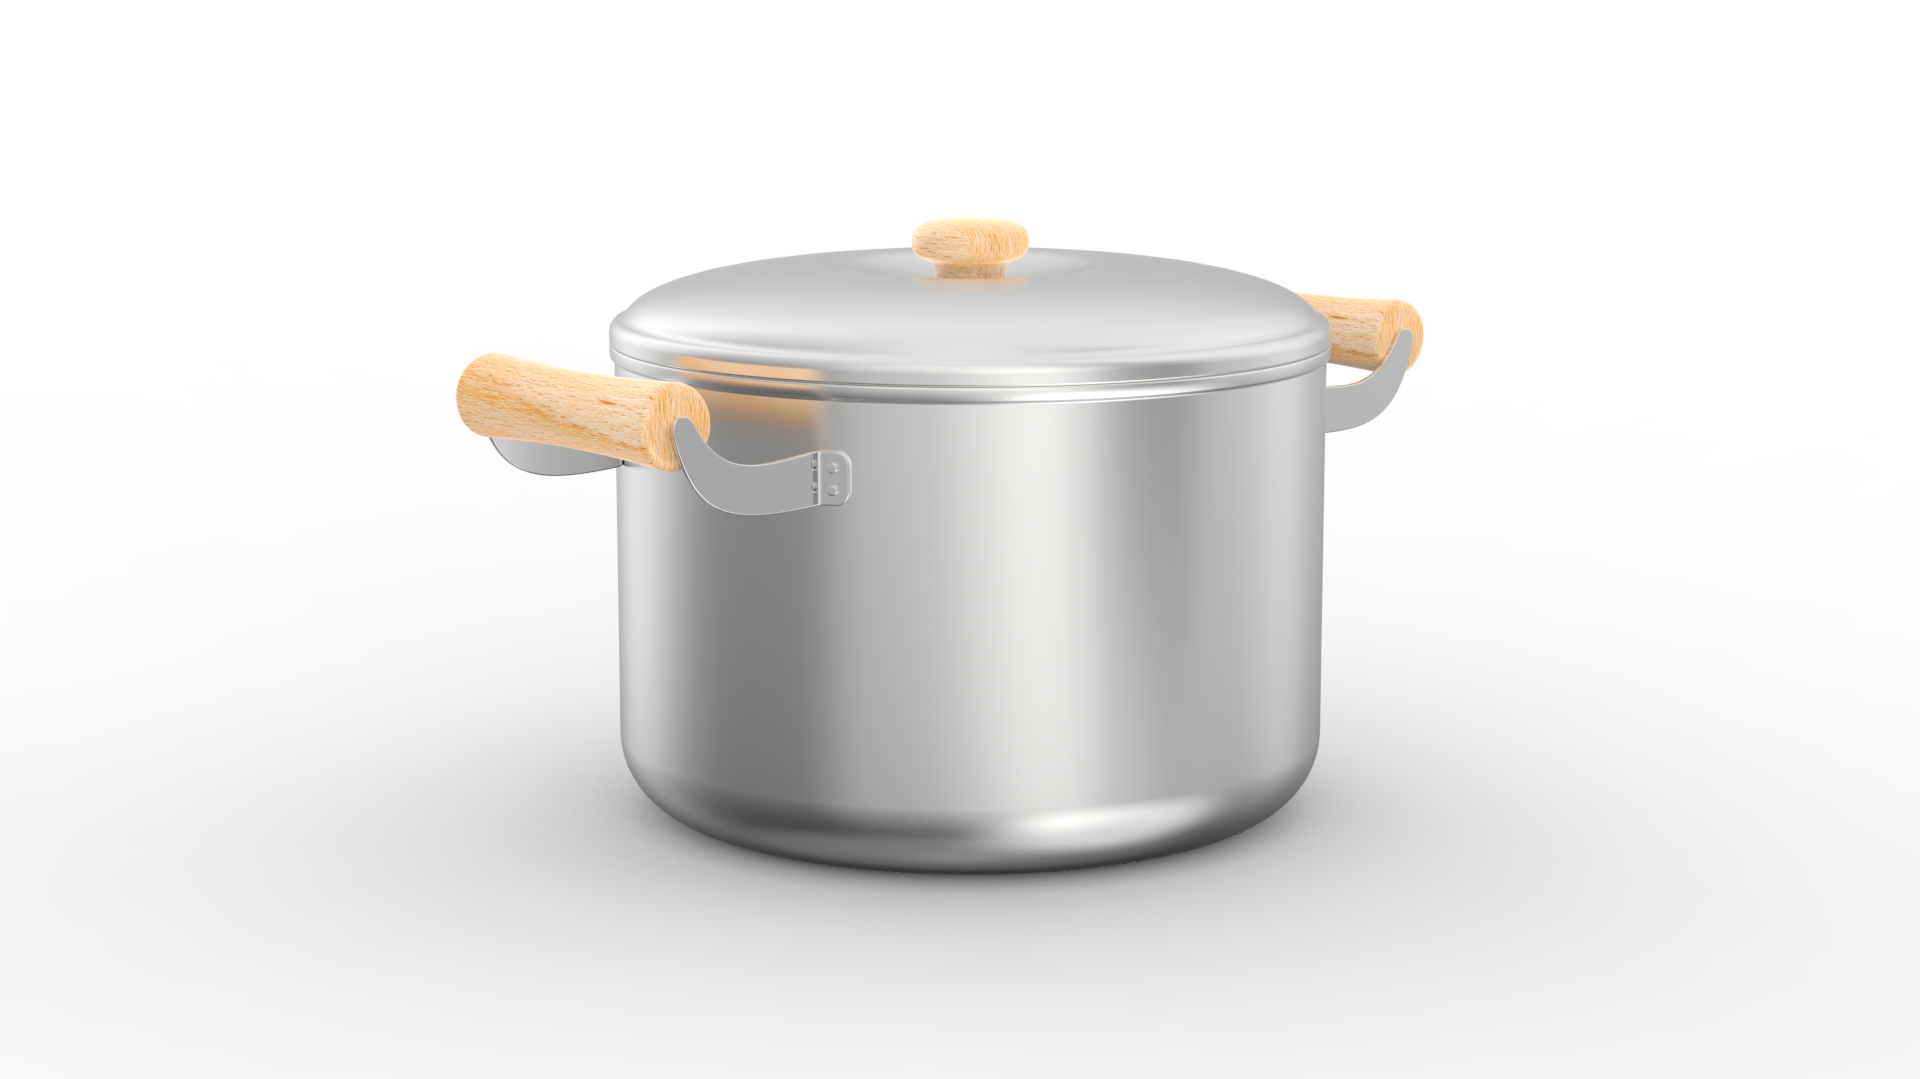 Nakano Stainless Steel Pot 8.3 Inch